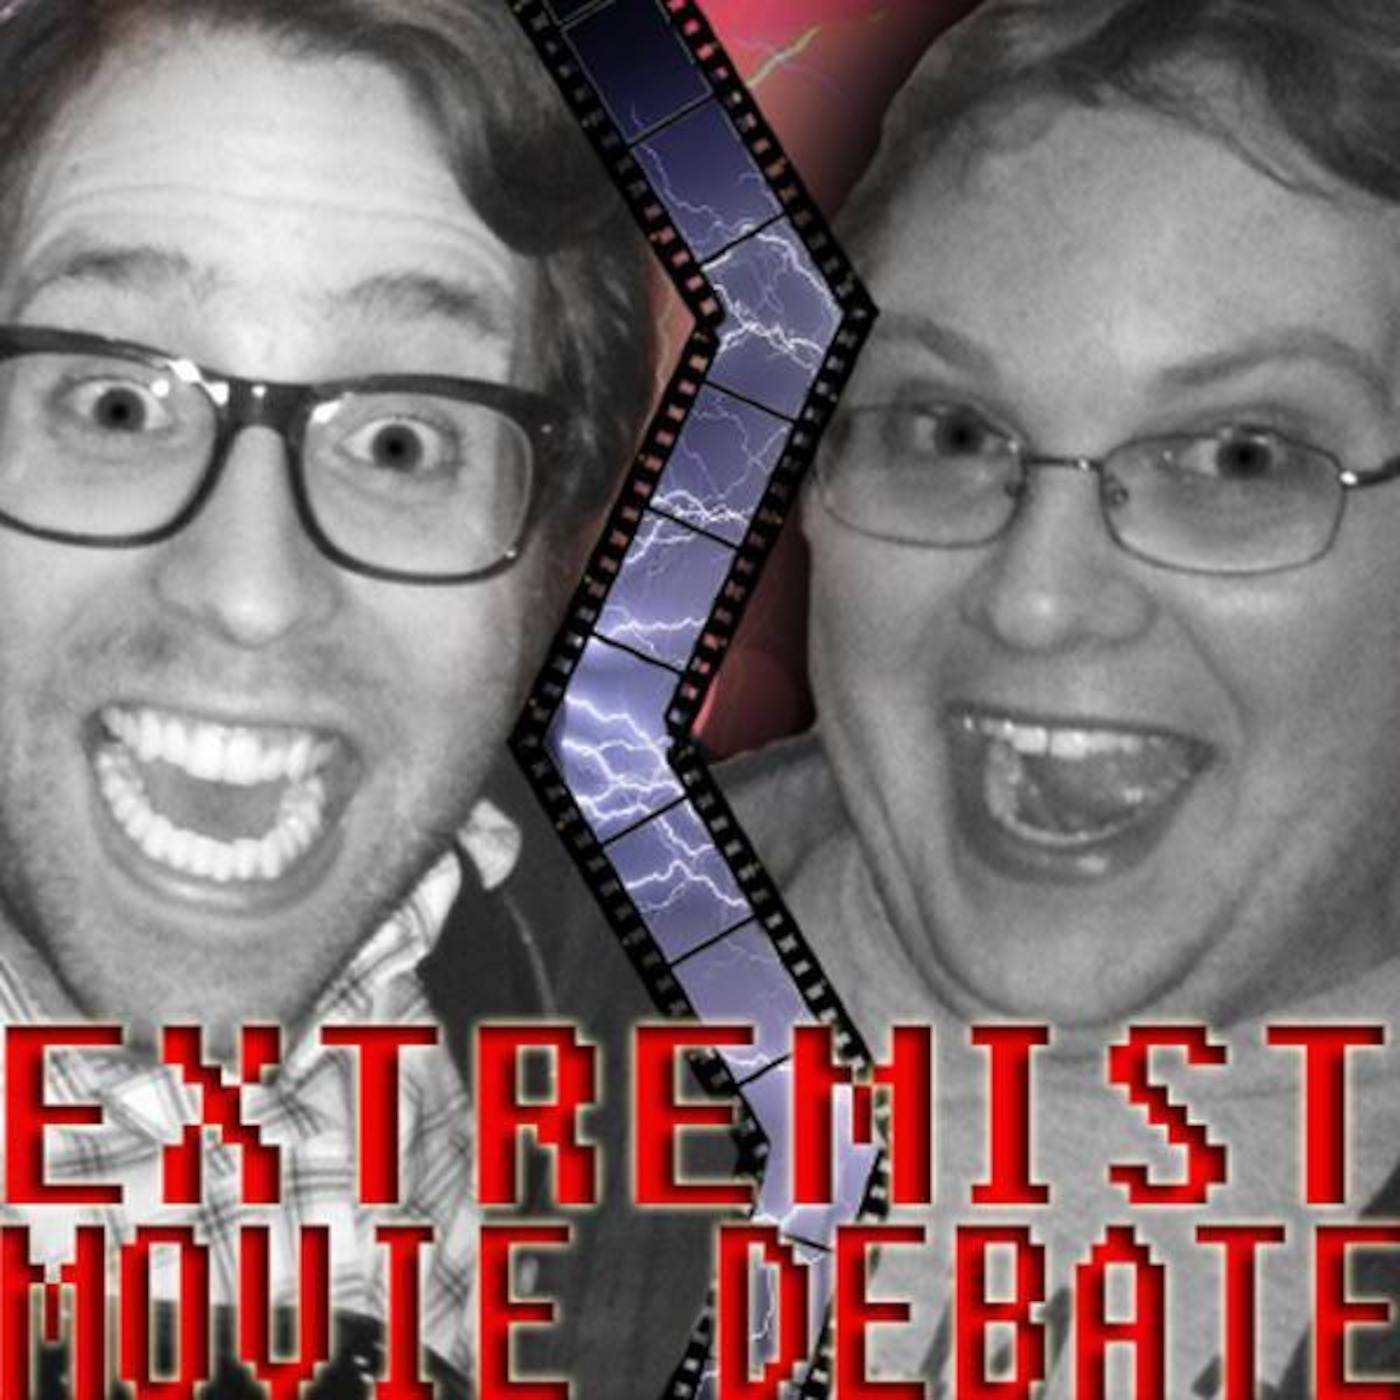 Extremist Movie Debate